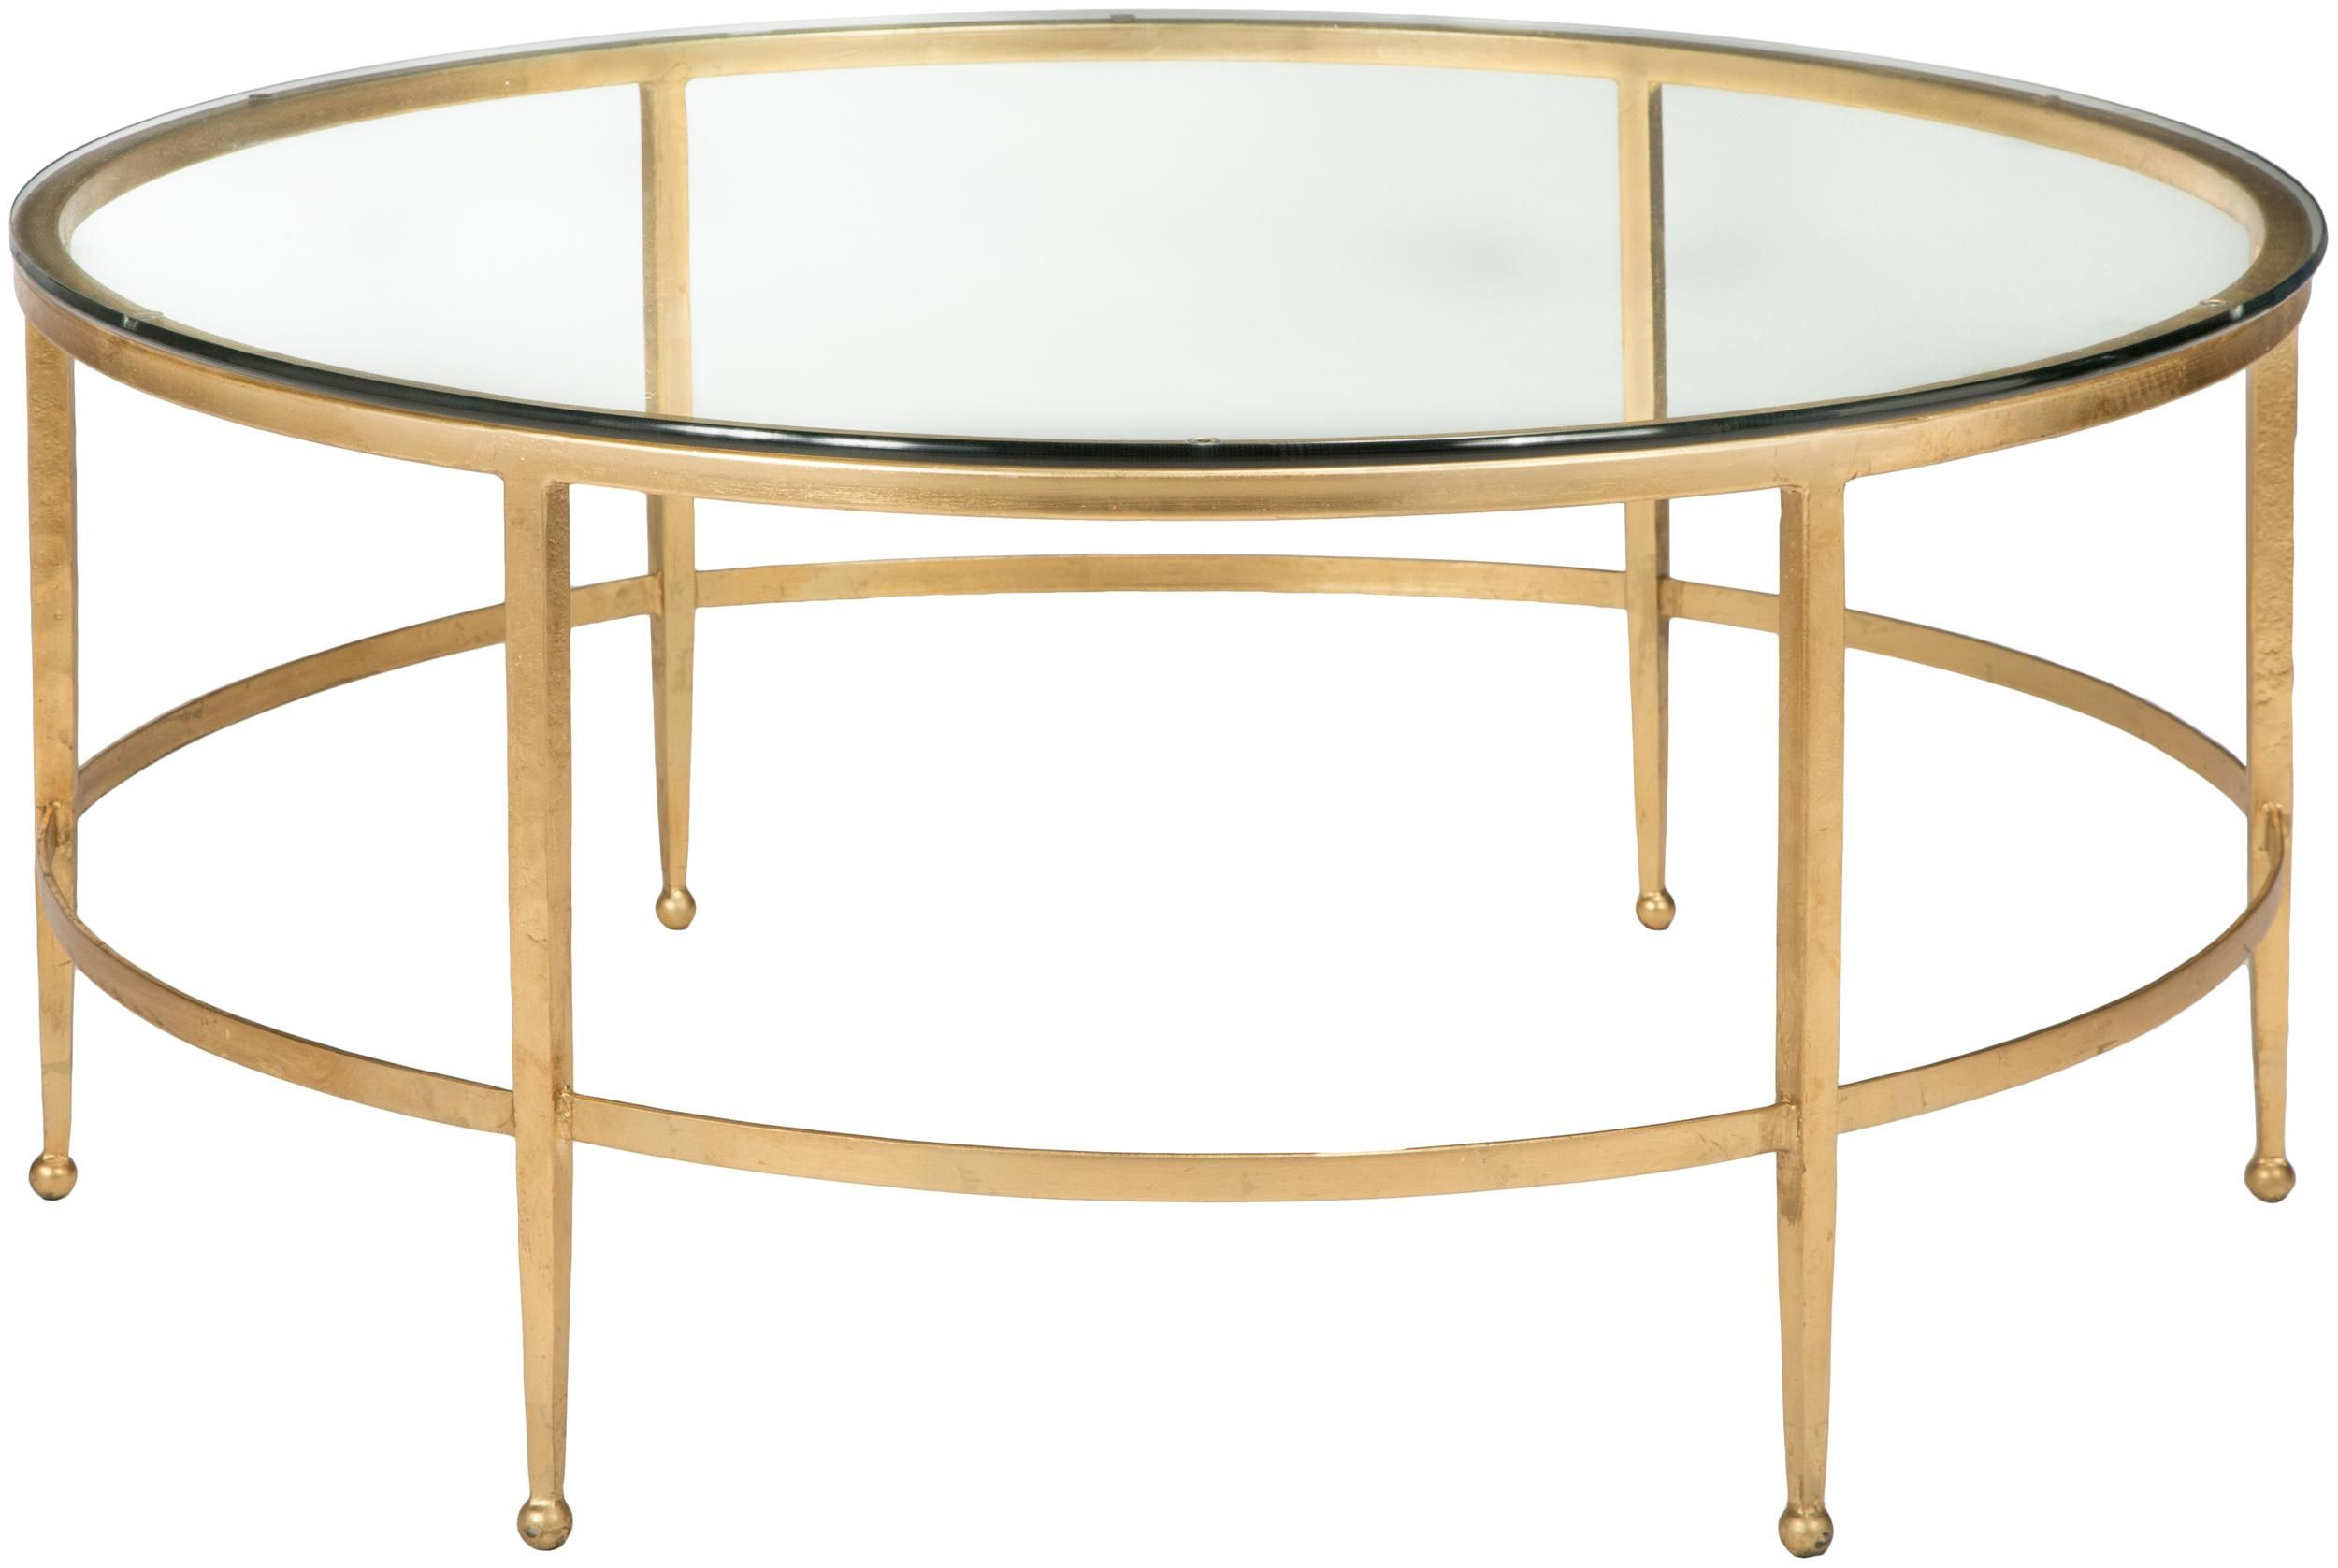 Couture With Images Gold Coffee Table Coffee Table Round